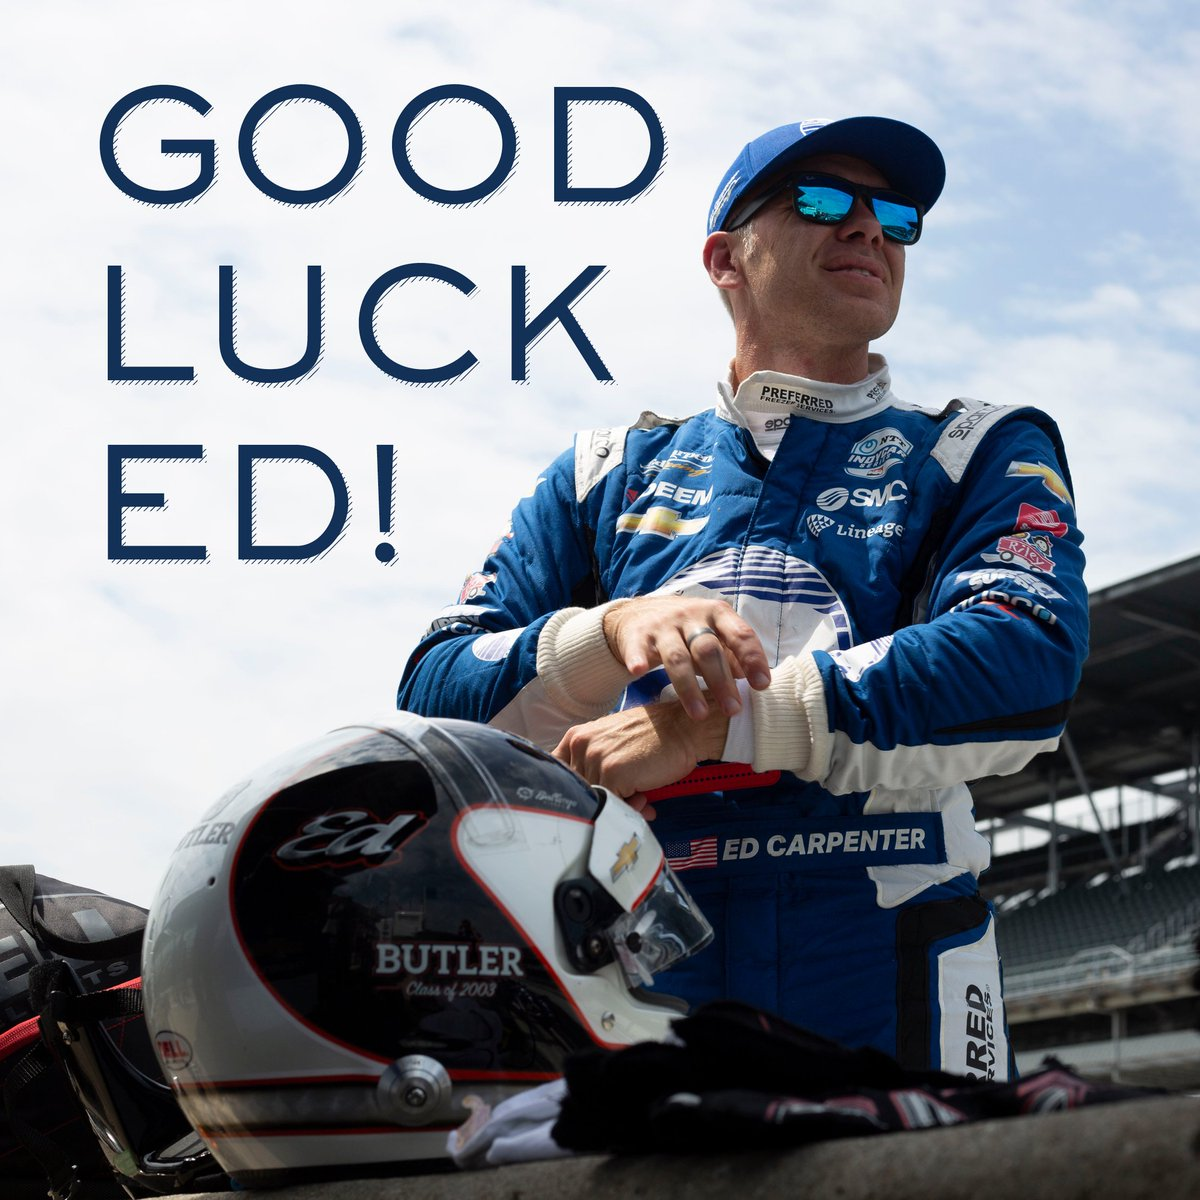 Butler University's photo on Ed Carpenter